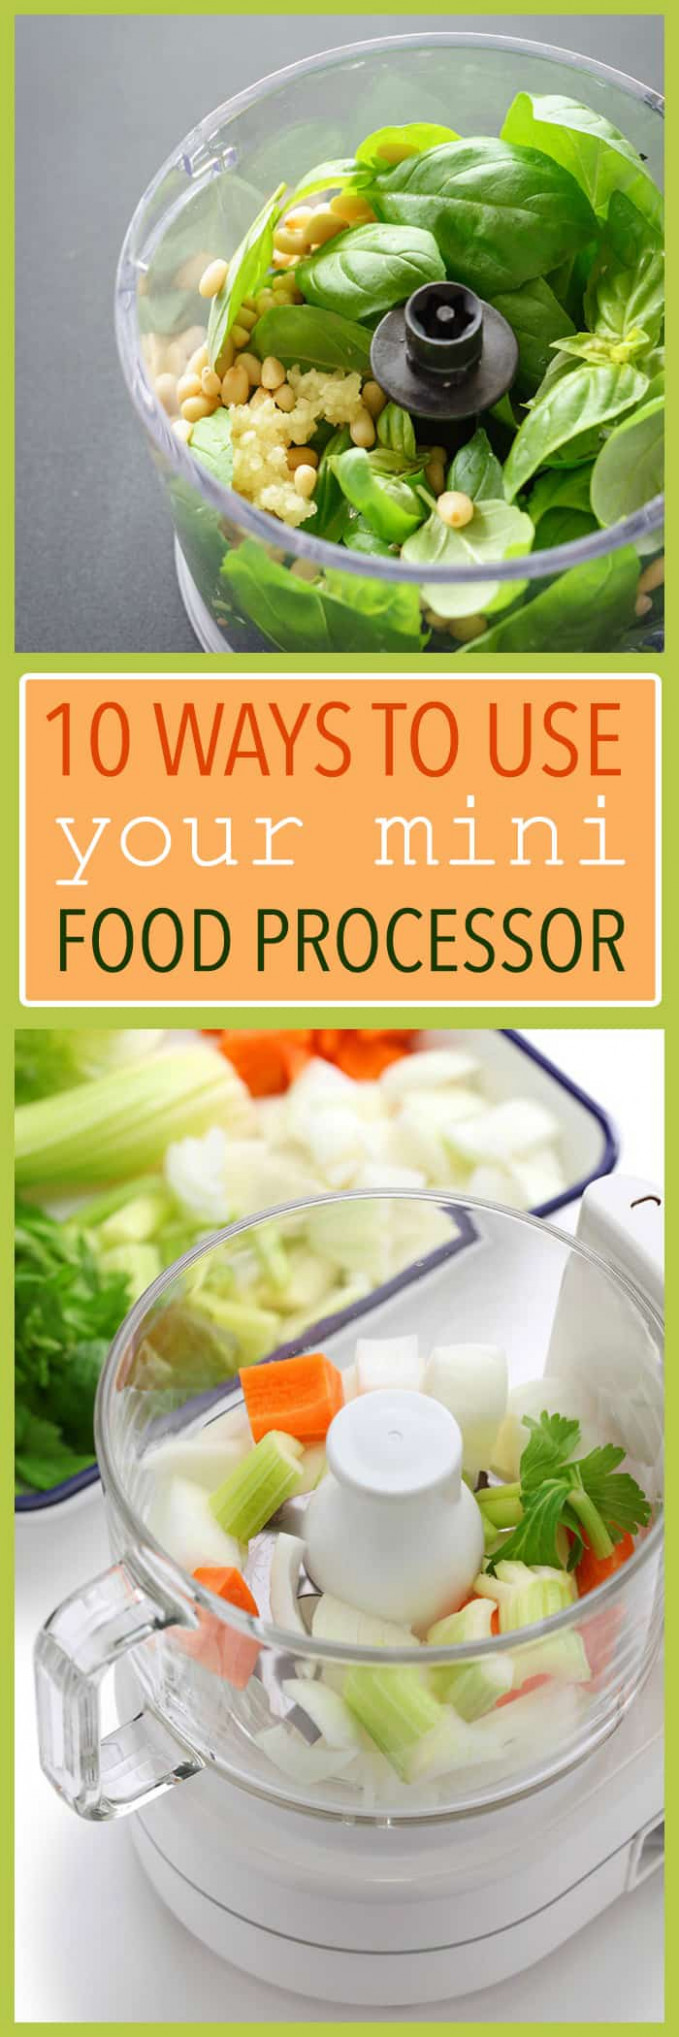 13 Ways to Use Your Mini Food Processor: put your food ..